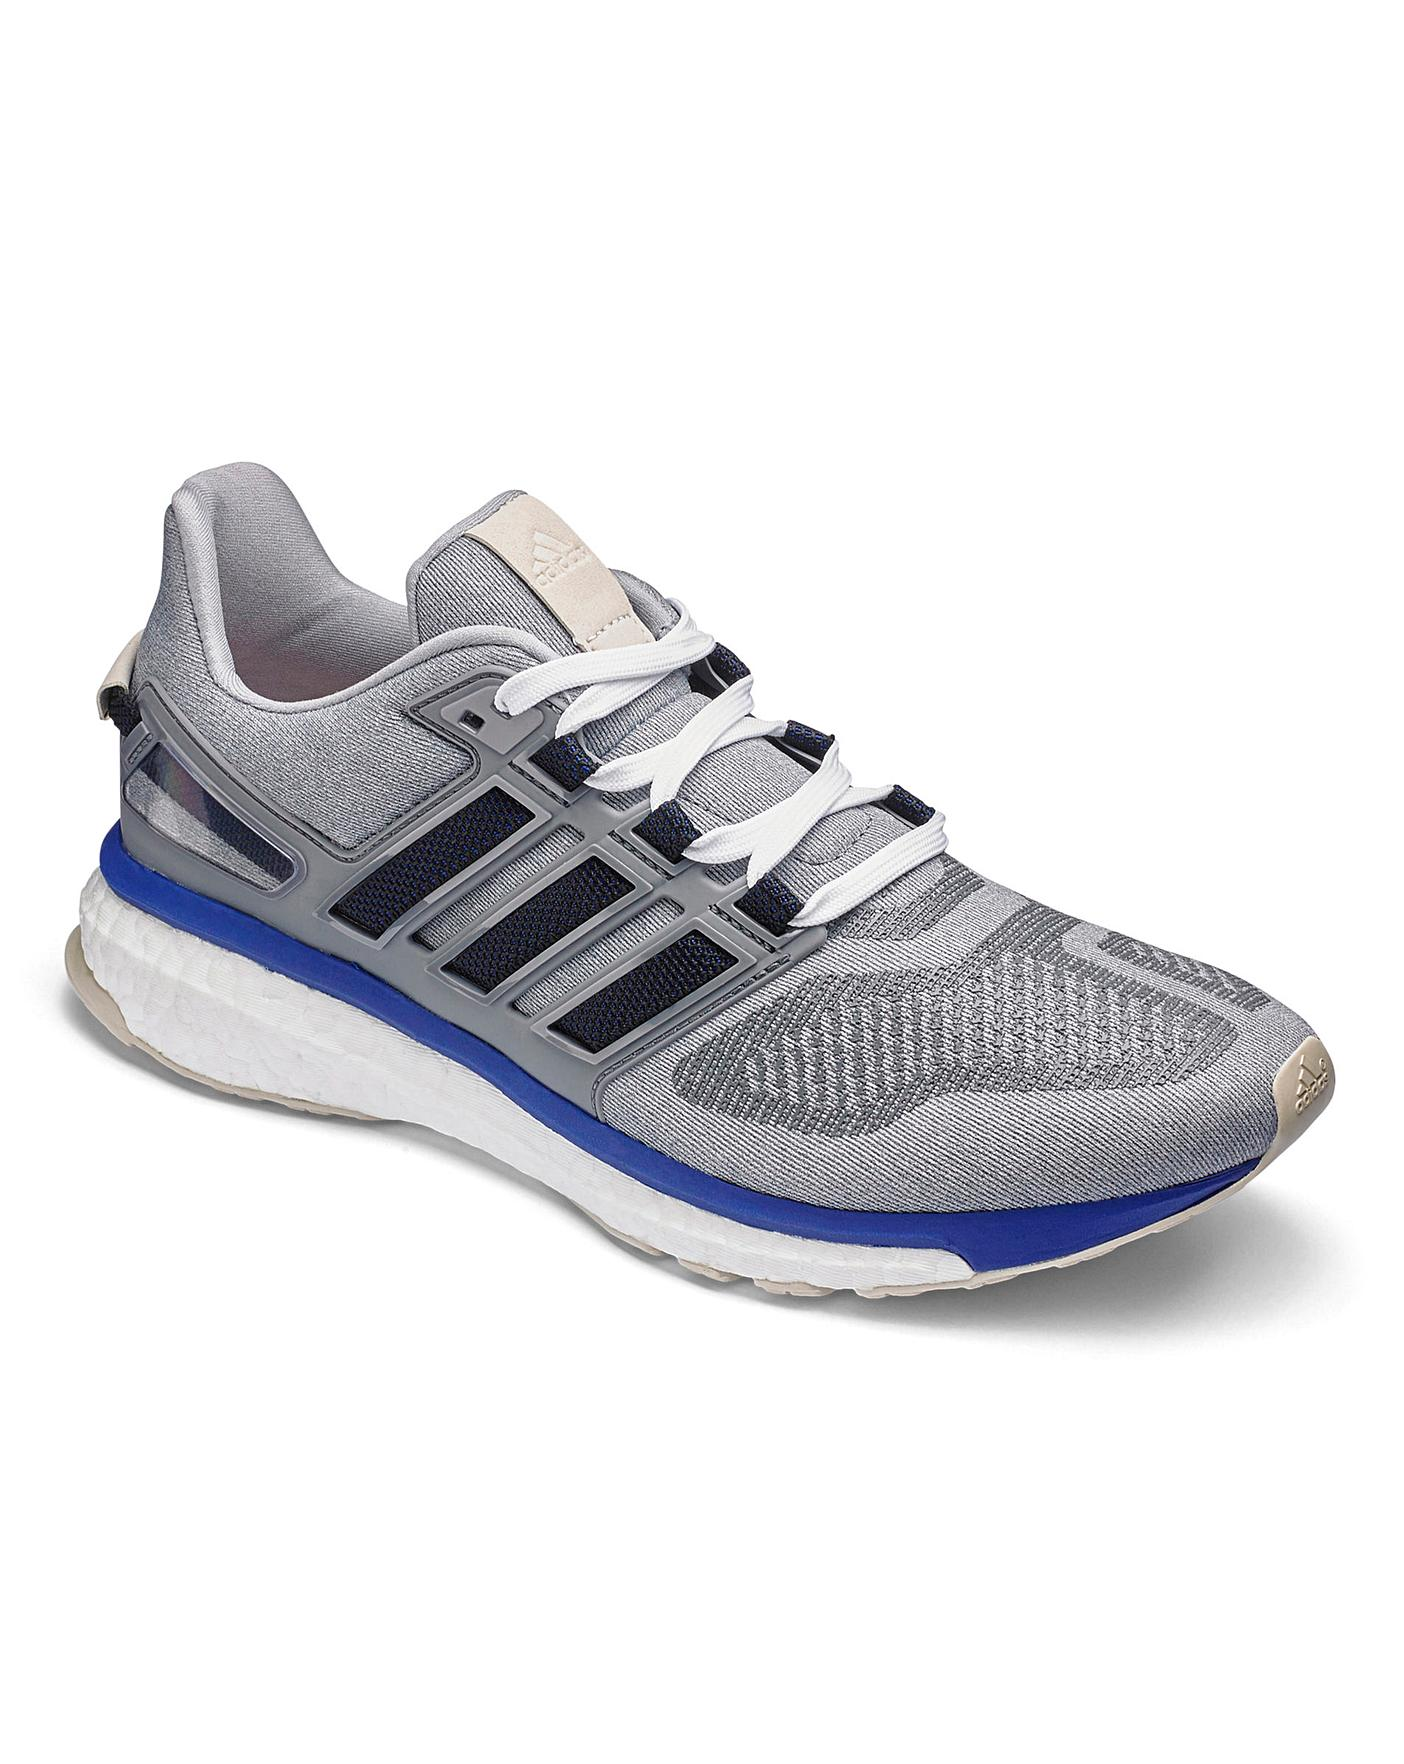 nouveau concept 6faa0 fce6c adidas energy boost 3 Mens Trainers